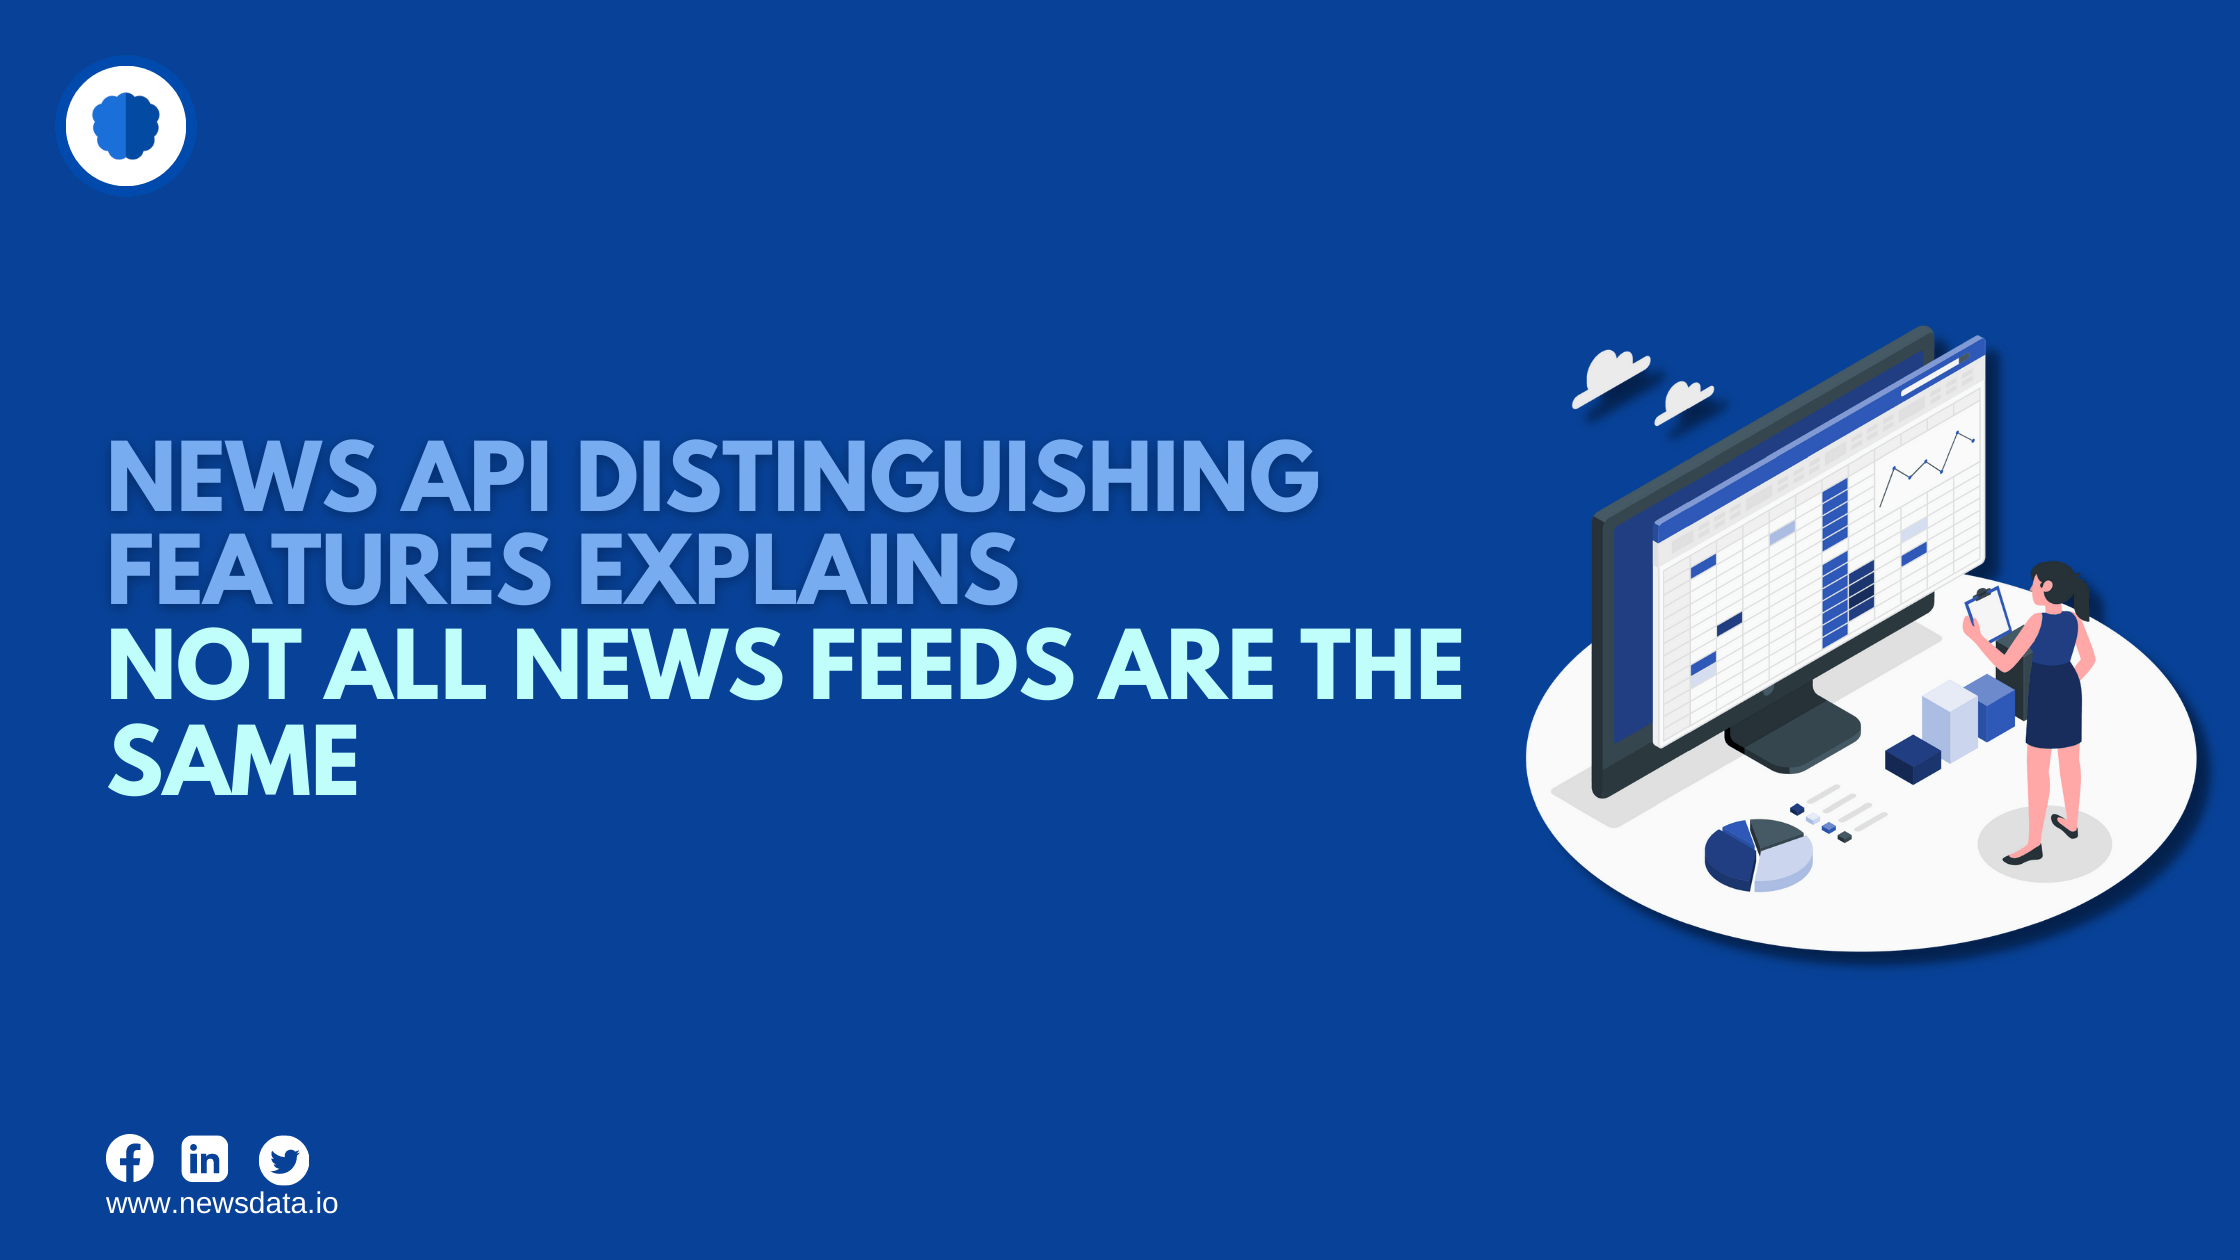 News API distinguishing features explains not all news feeds are the same